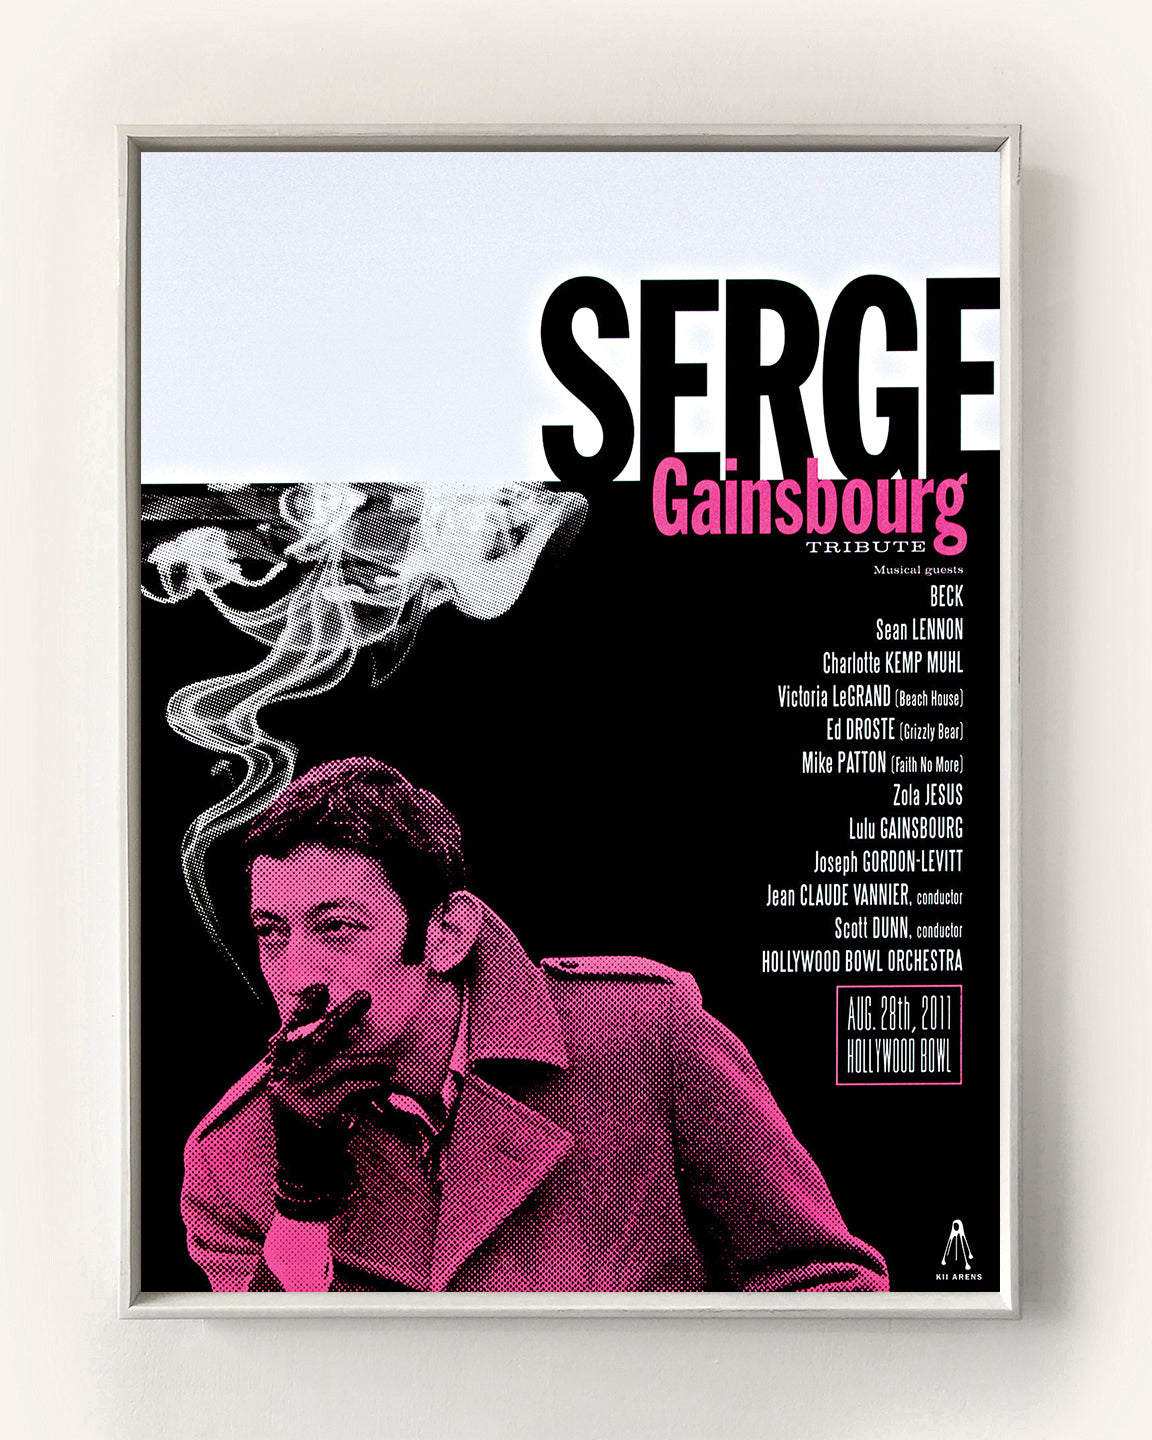 SERGE GAINSBOURG - LOS ANGELES, CA 2011